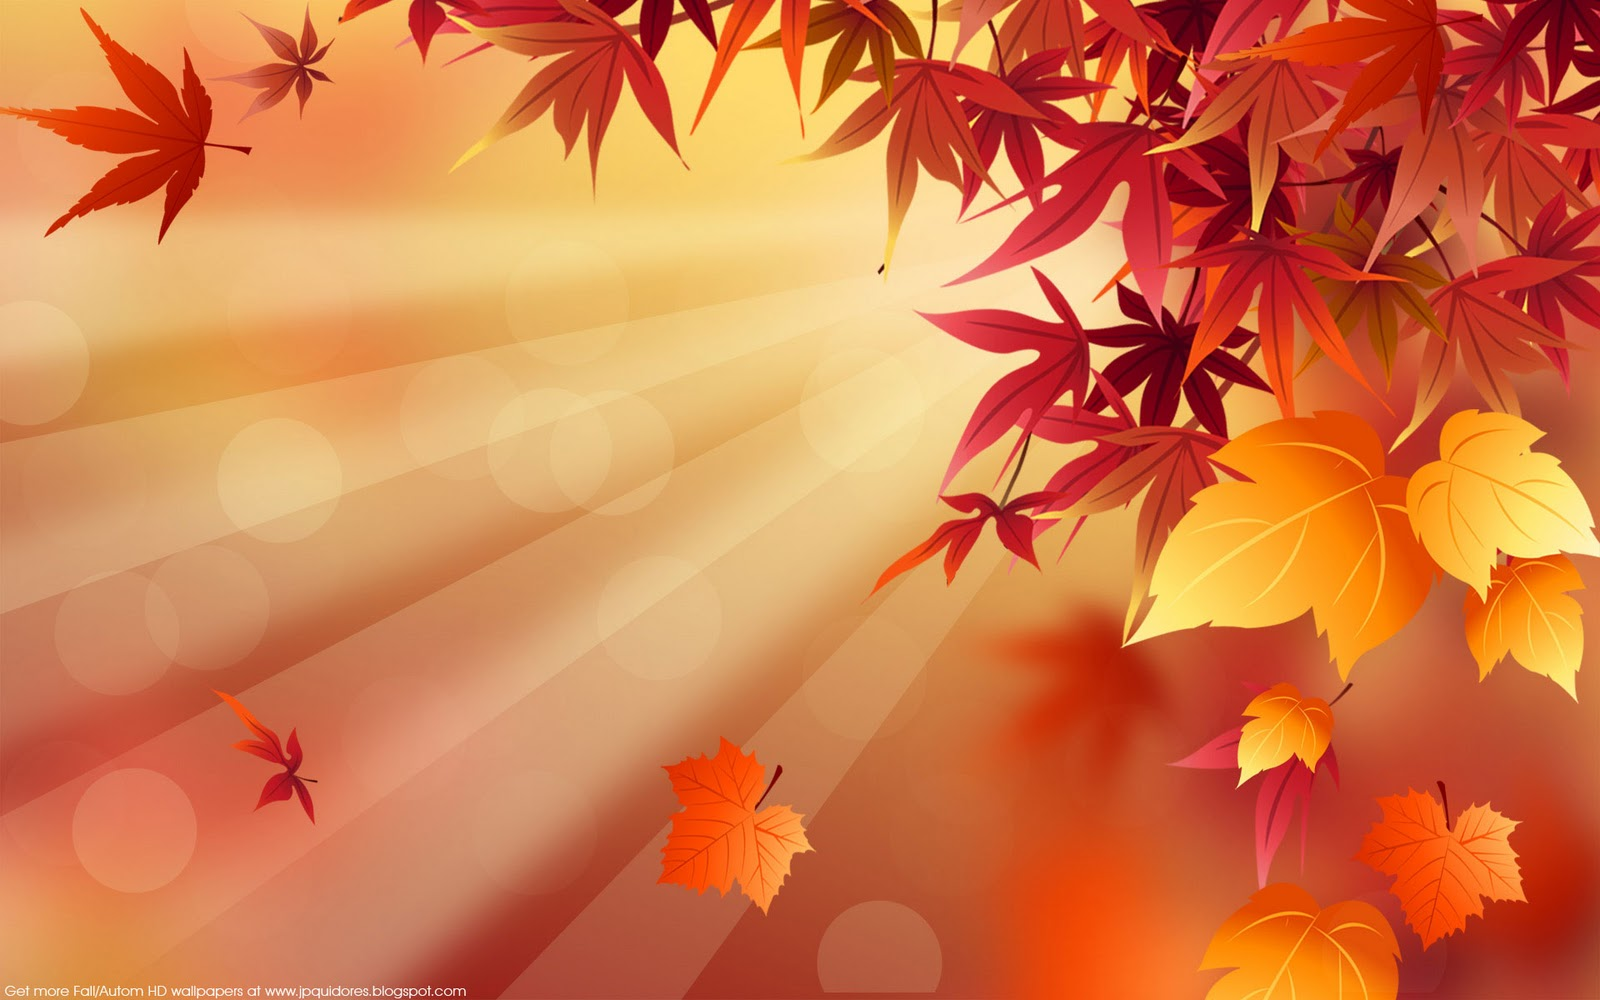 Autumn Season Wallpaper HD